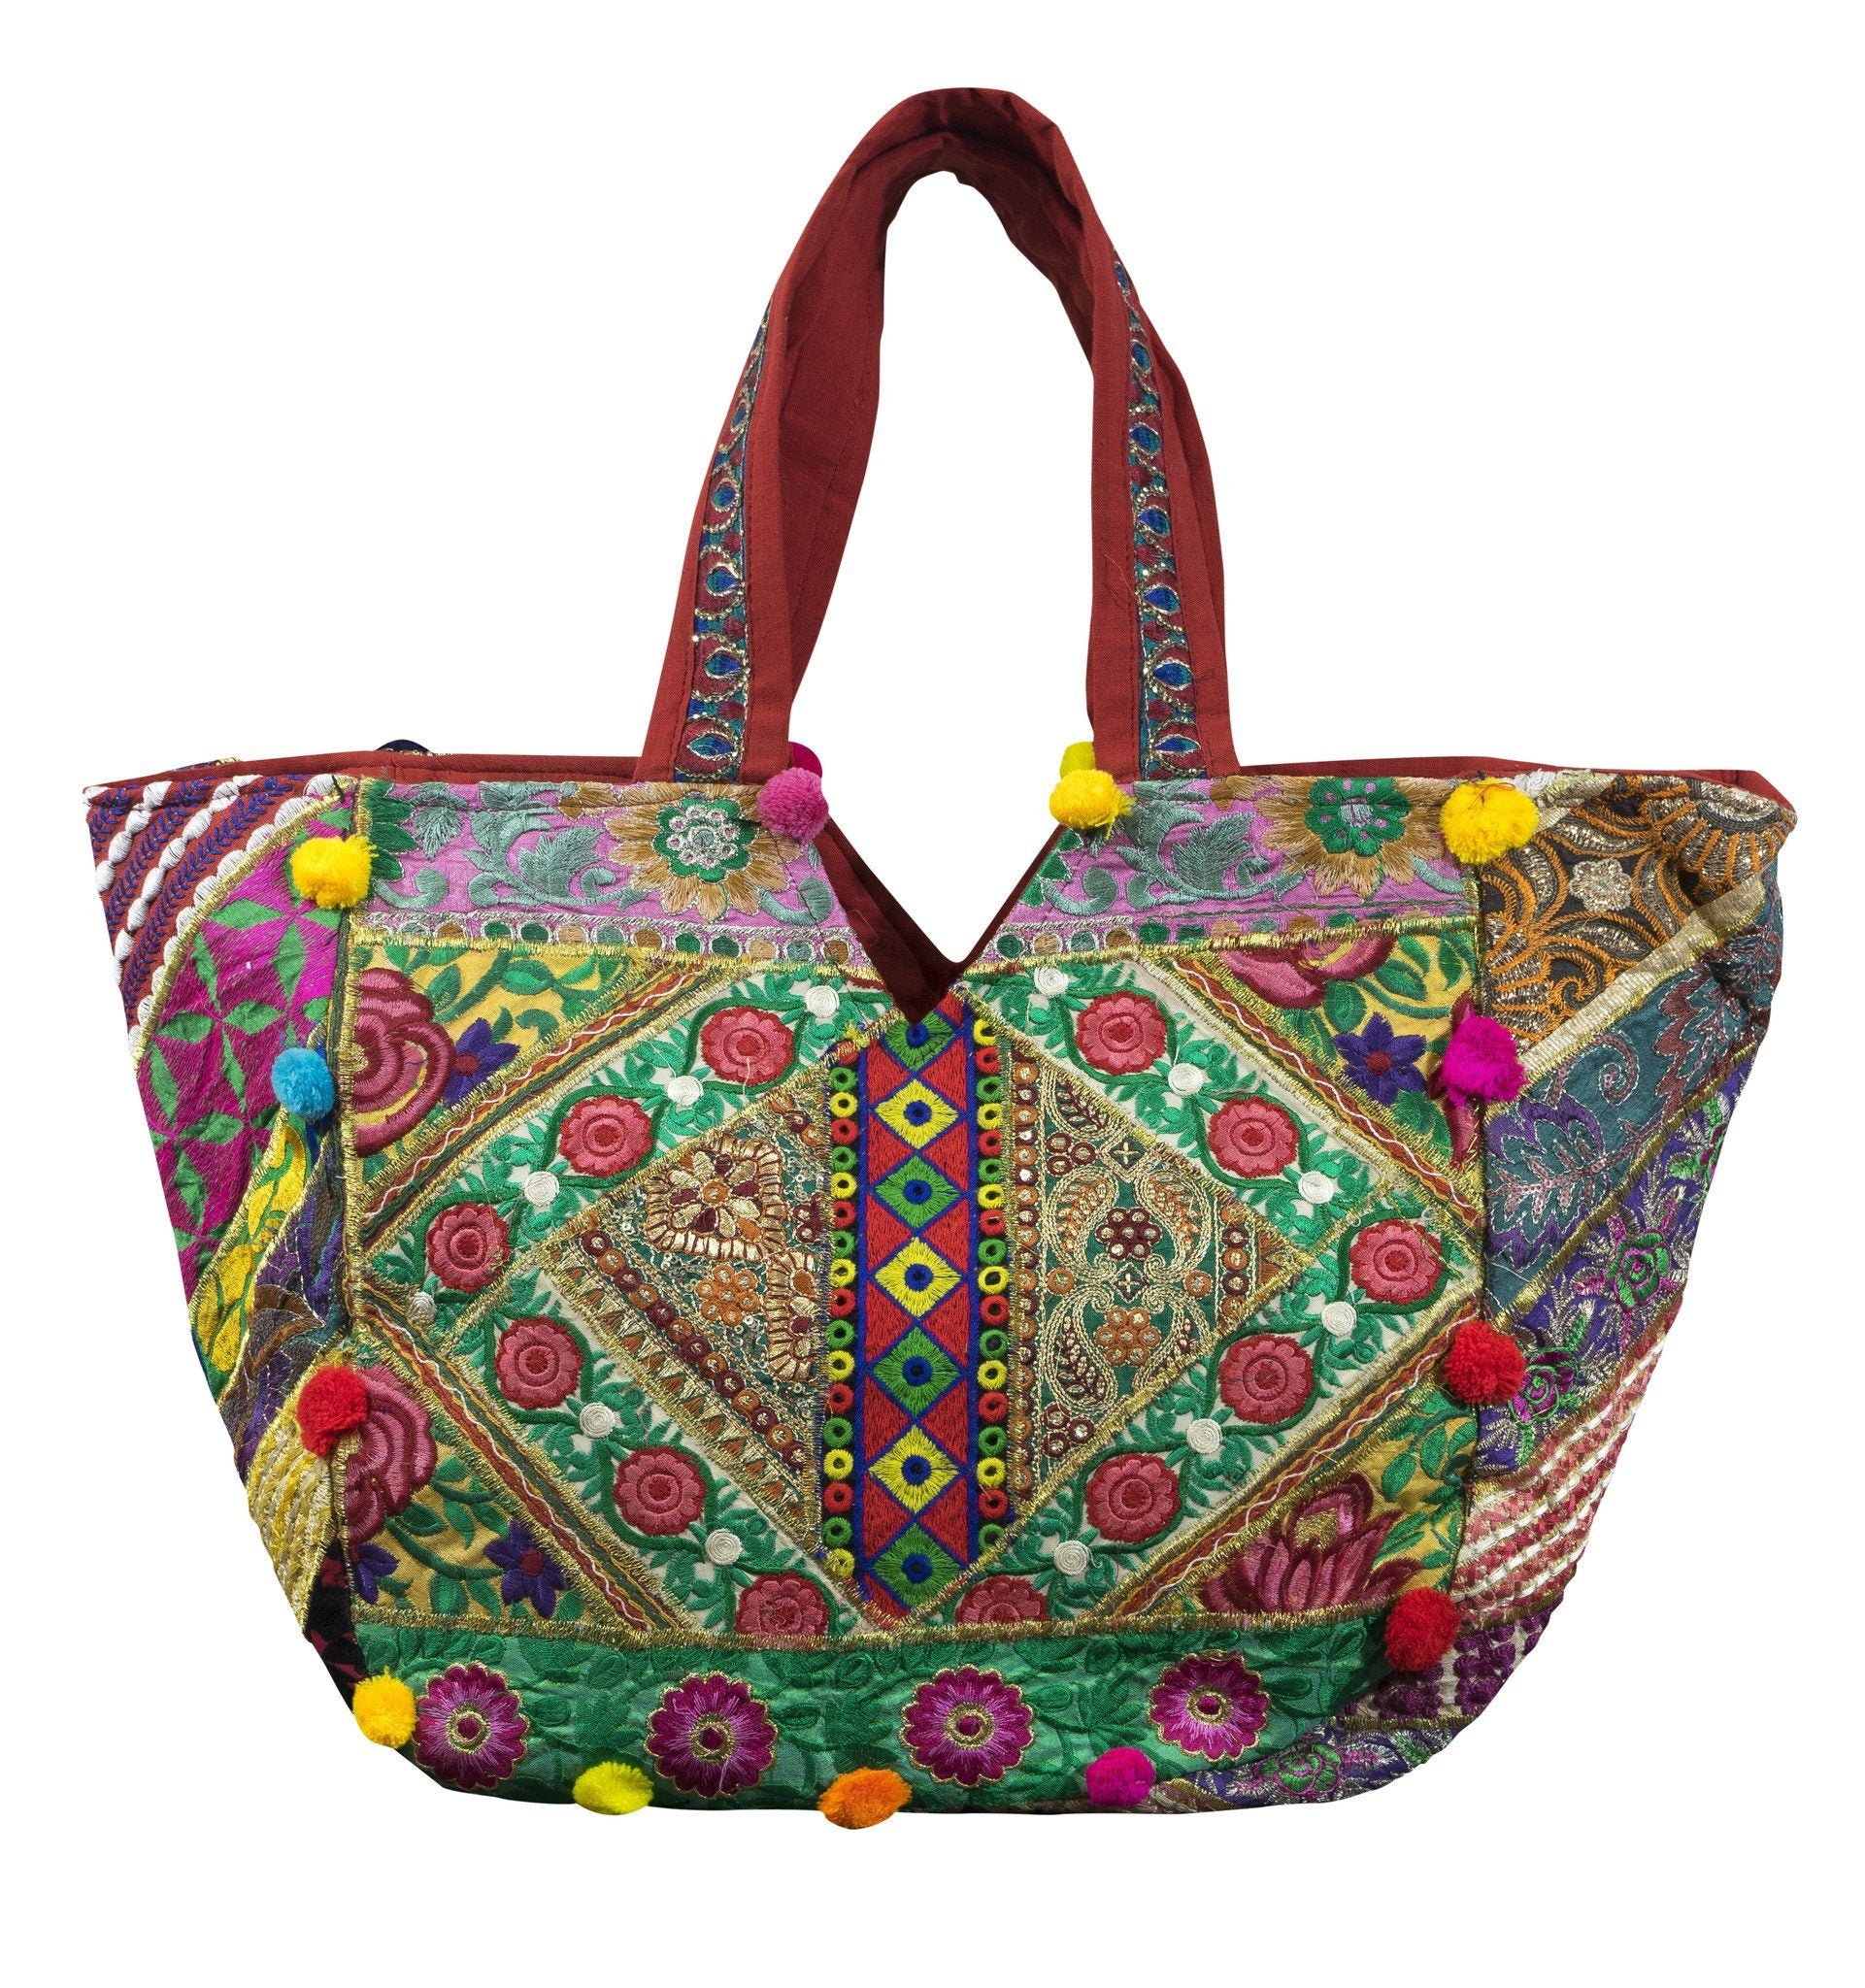 Stylish Ethnic Indian style Embroidered Mirror Bag Shoulder Strap - CCCollections